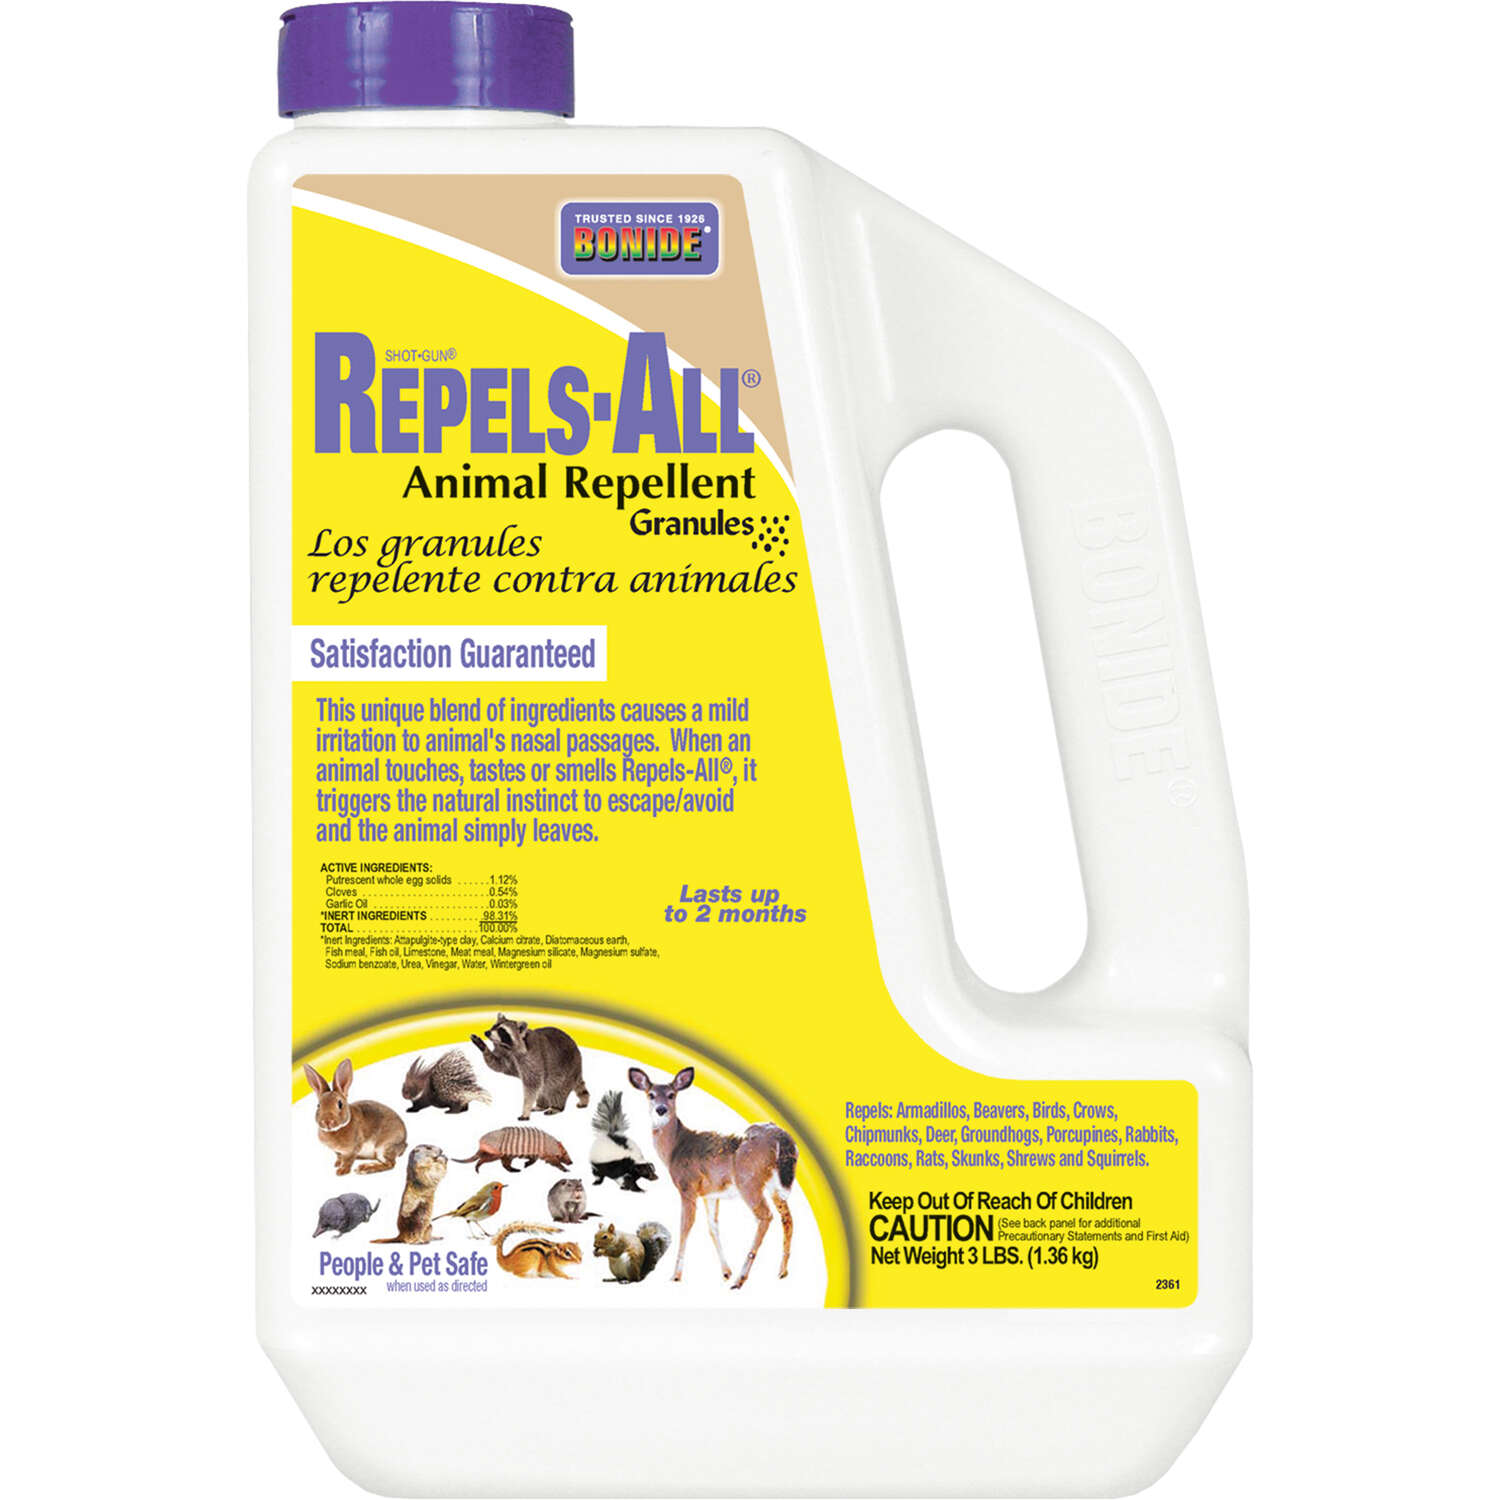 Bonide  Repels-All  Animal Repellent  Granules  For Most Animal Types 3 lb.